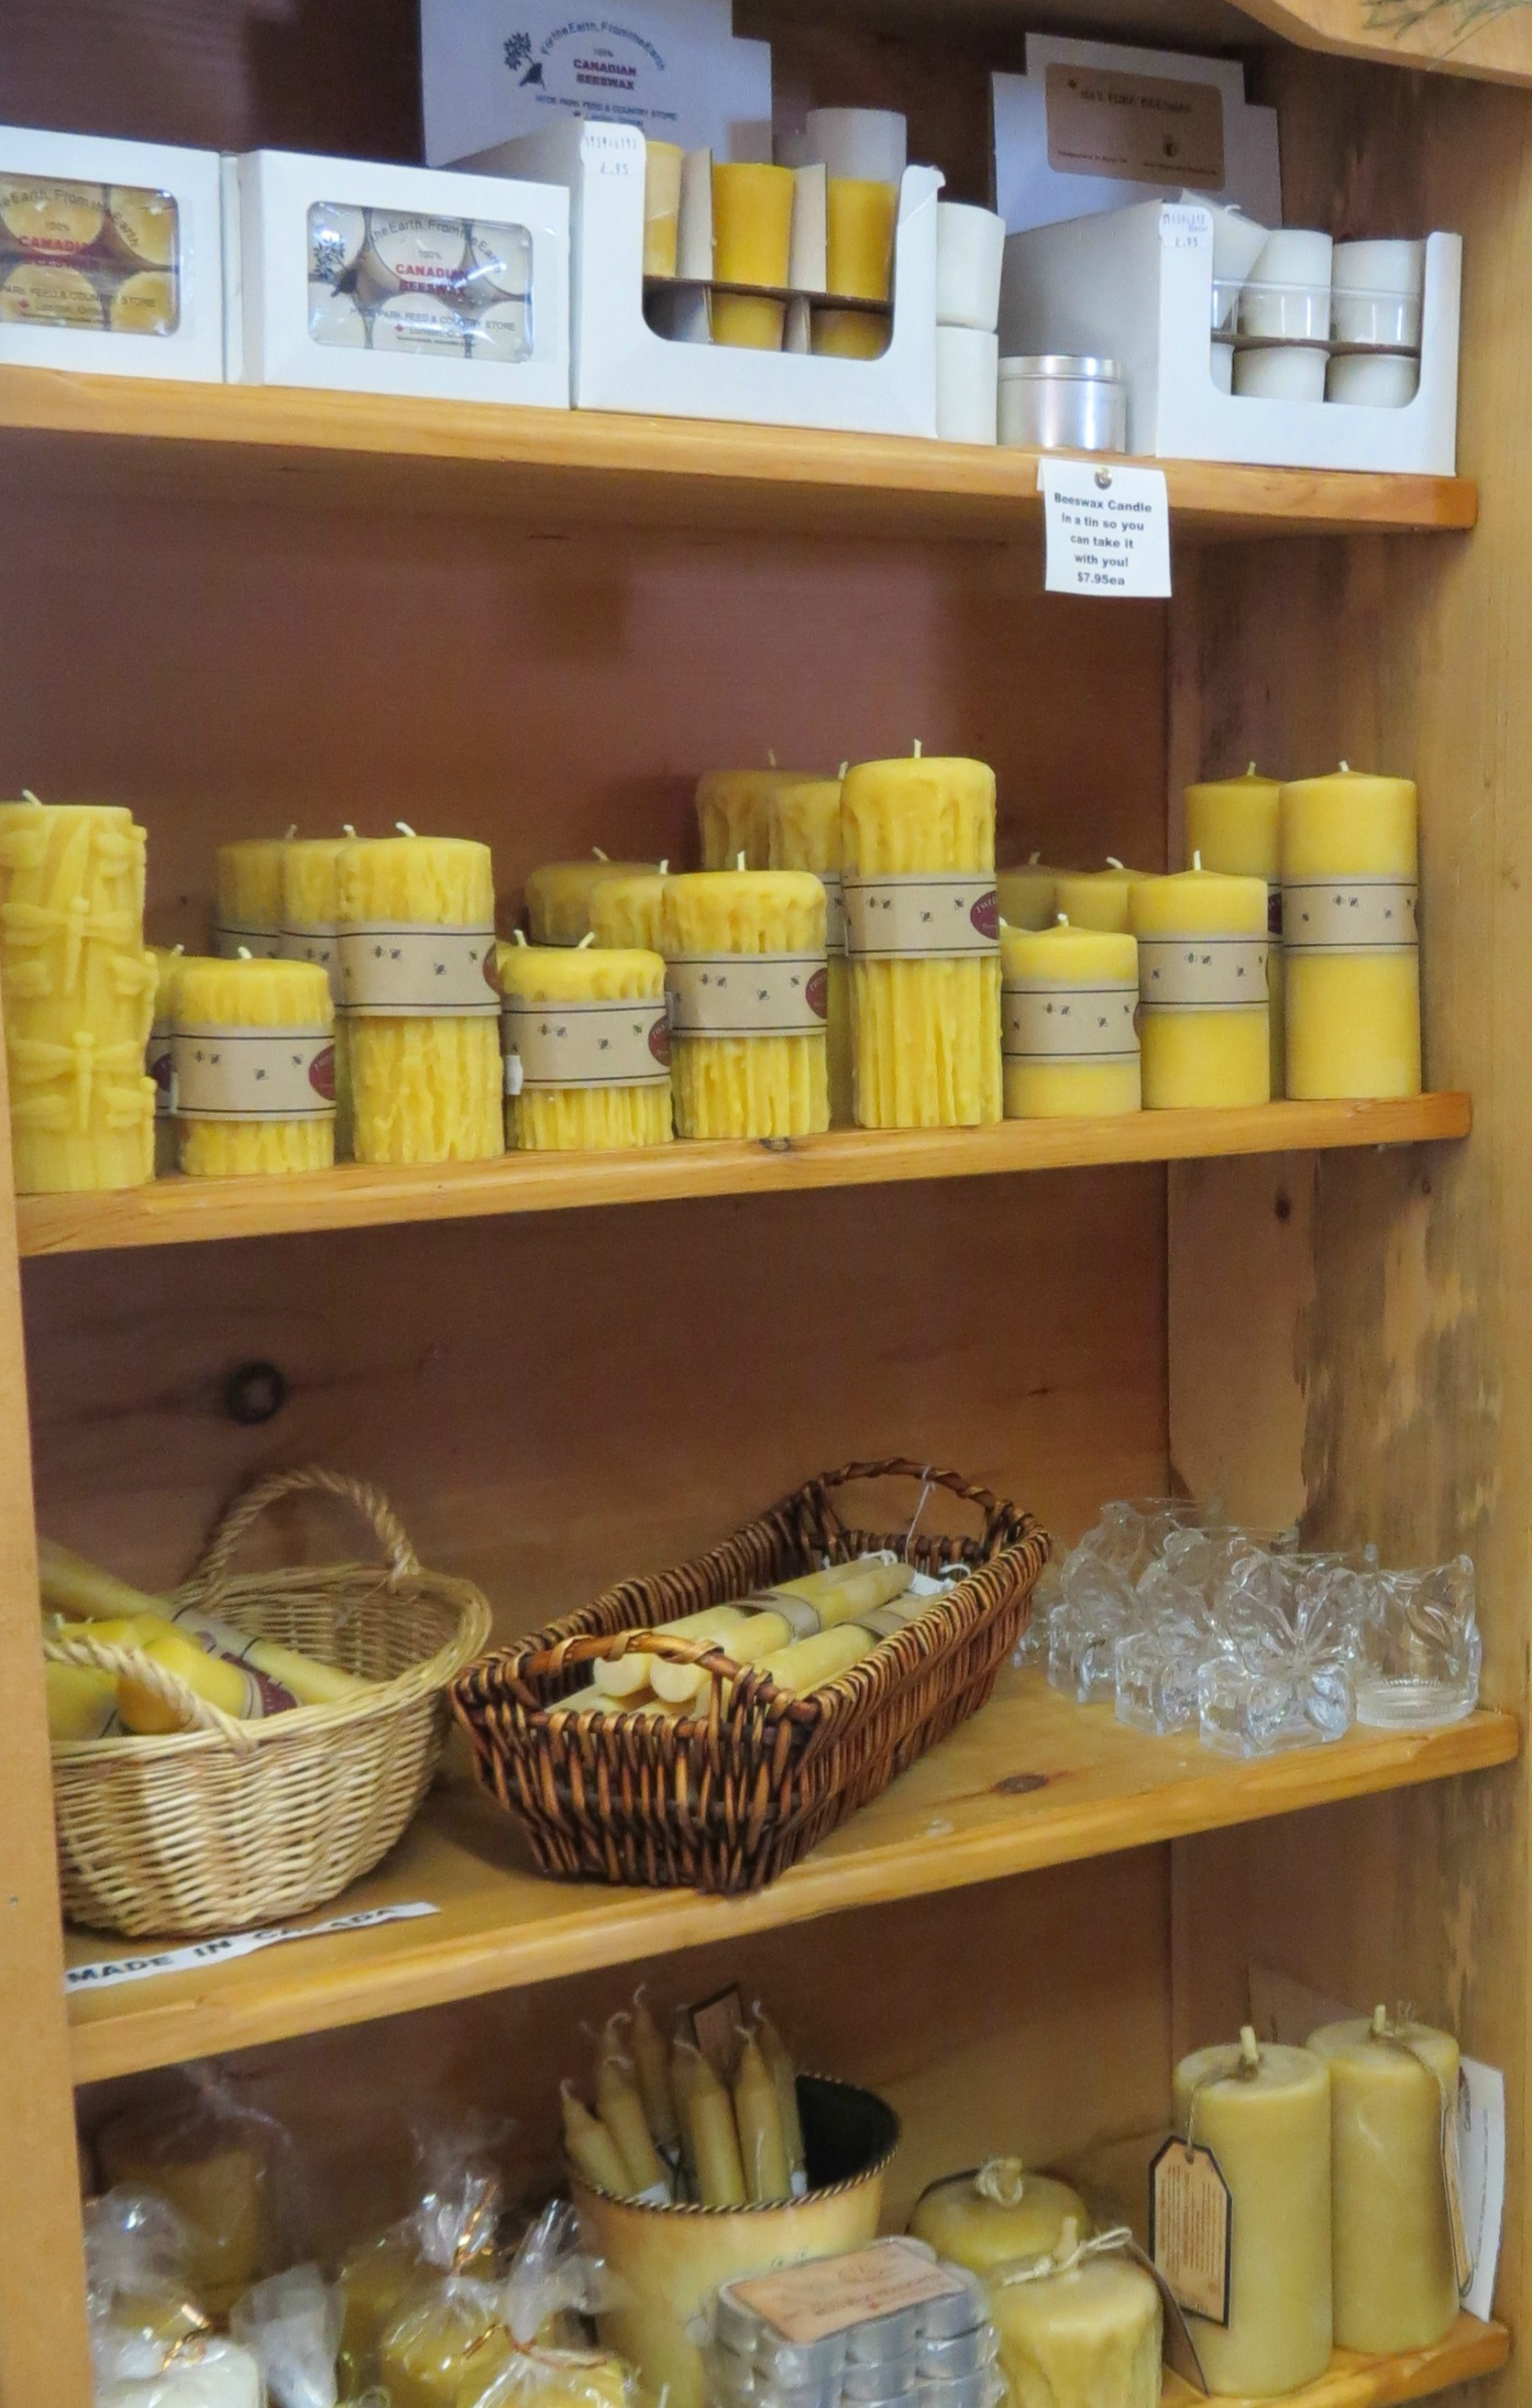 Just a small portion of the Beeswax Candles that we currently offer!!